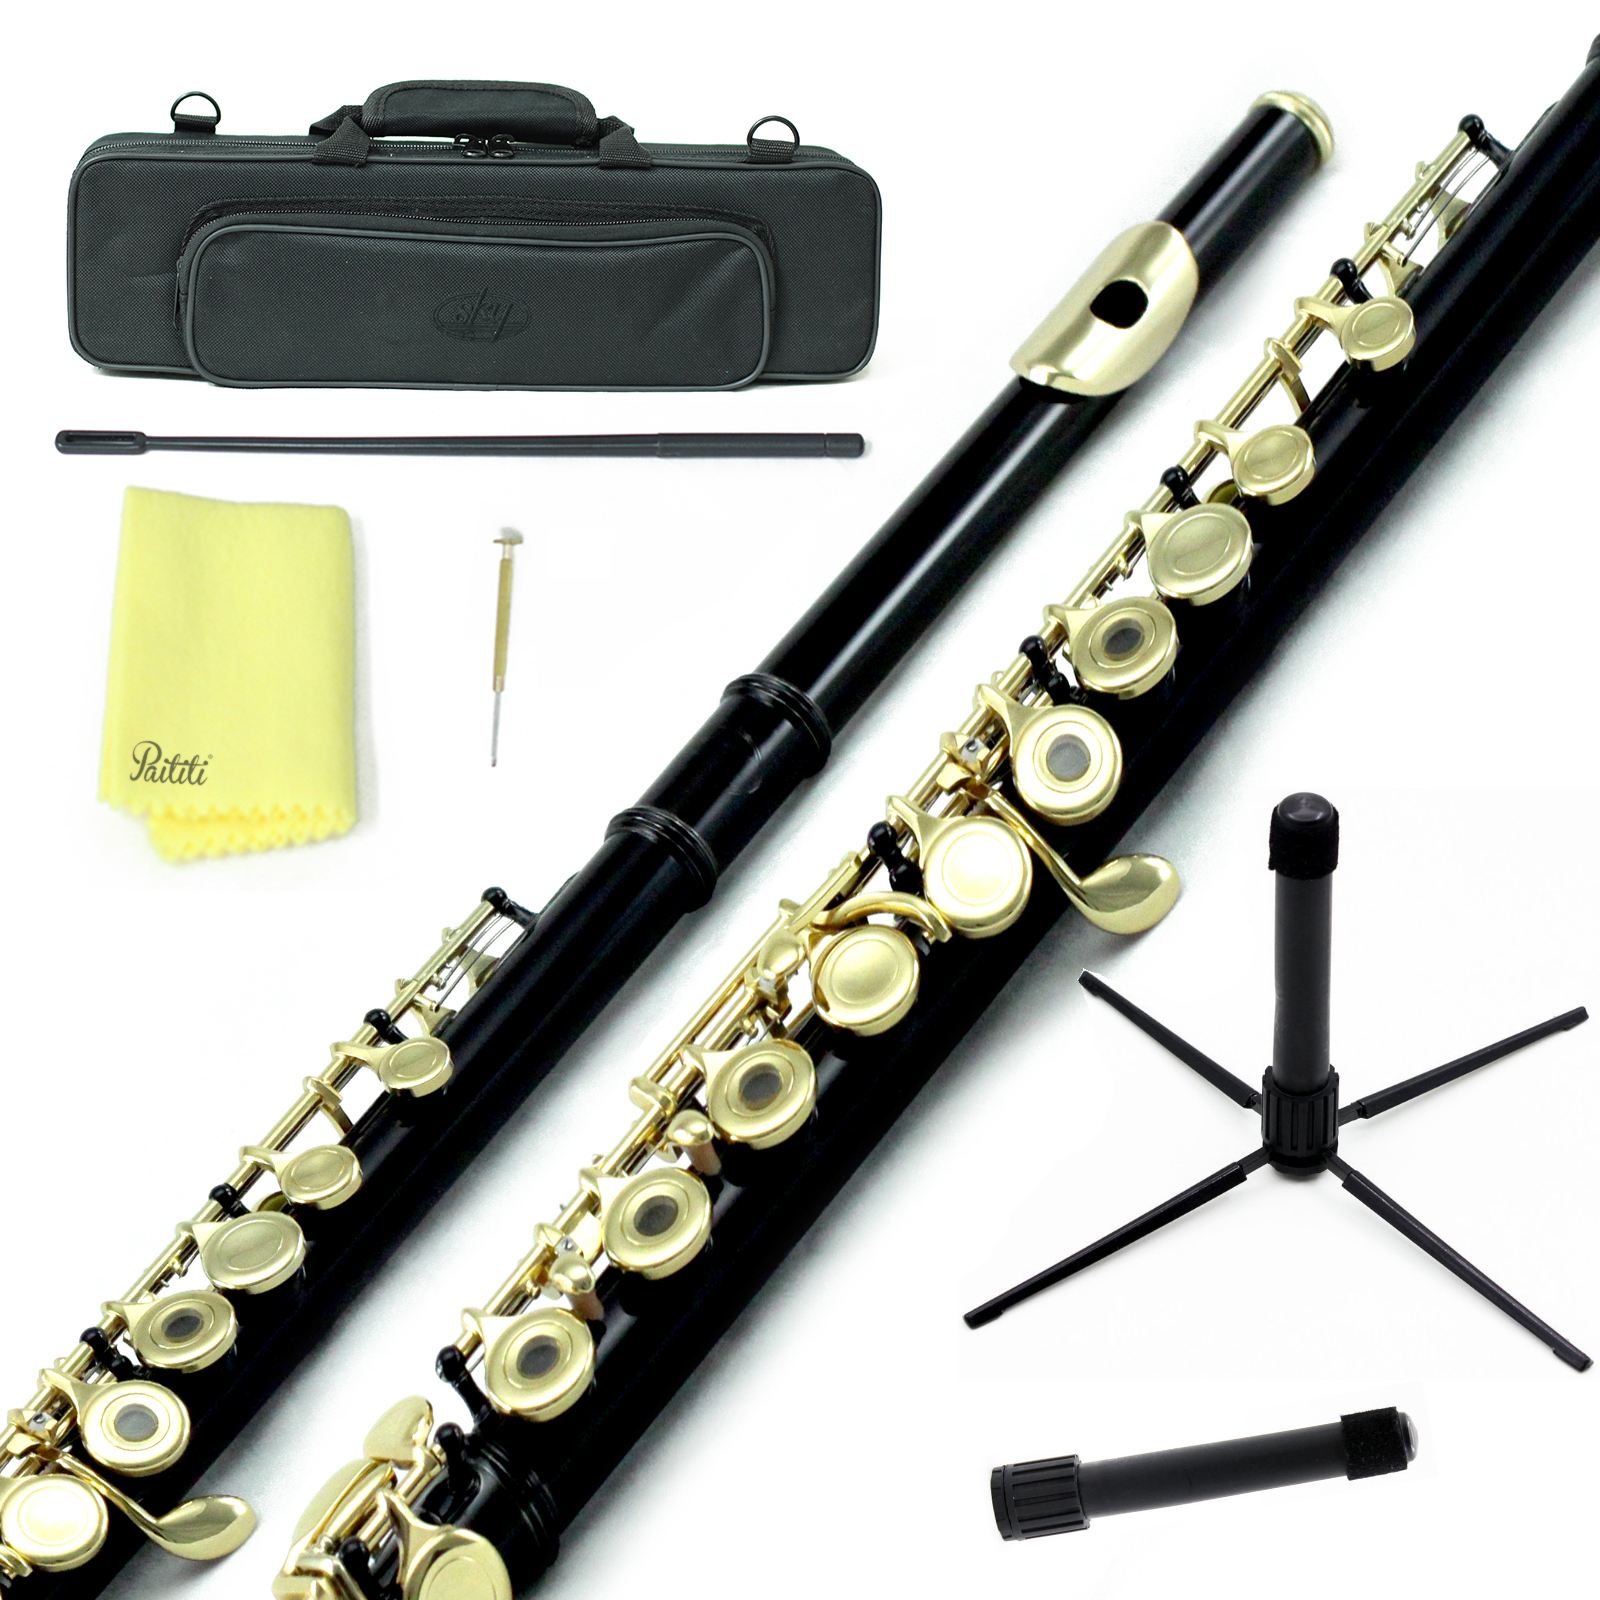 Sky Open Hole C Flute with Lightweight Case, Cleaning Rod, Cloth, Joint Grease and Screw Driver - Black Gold